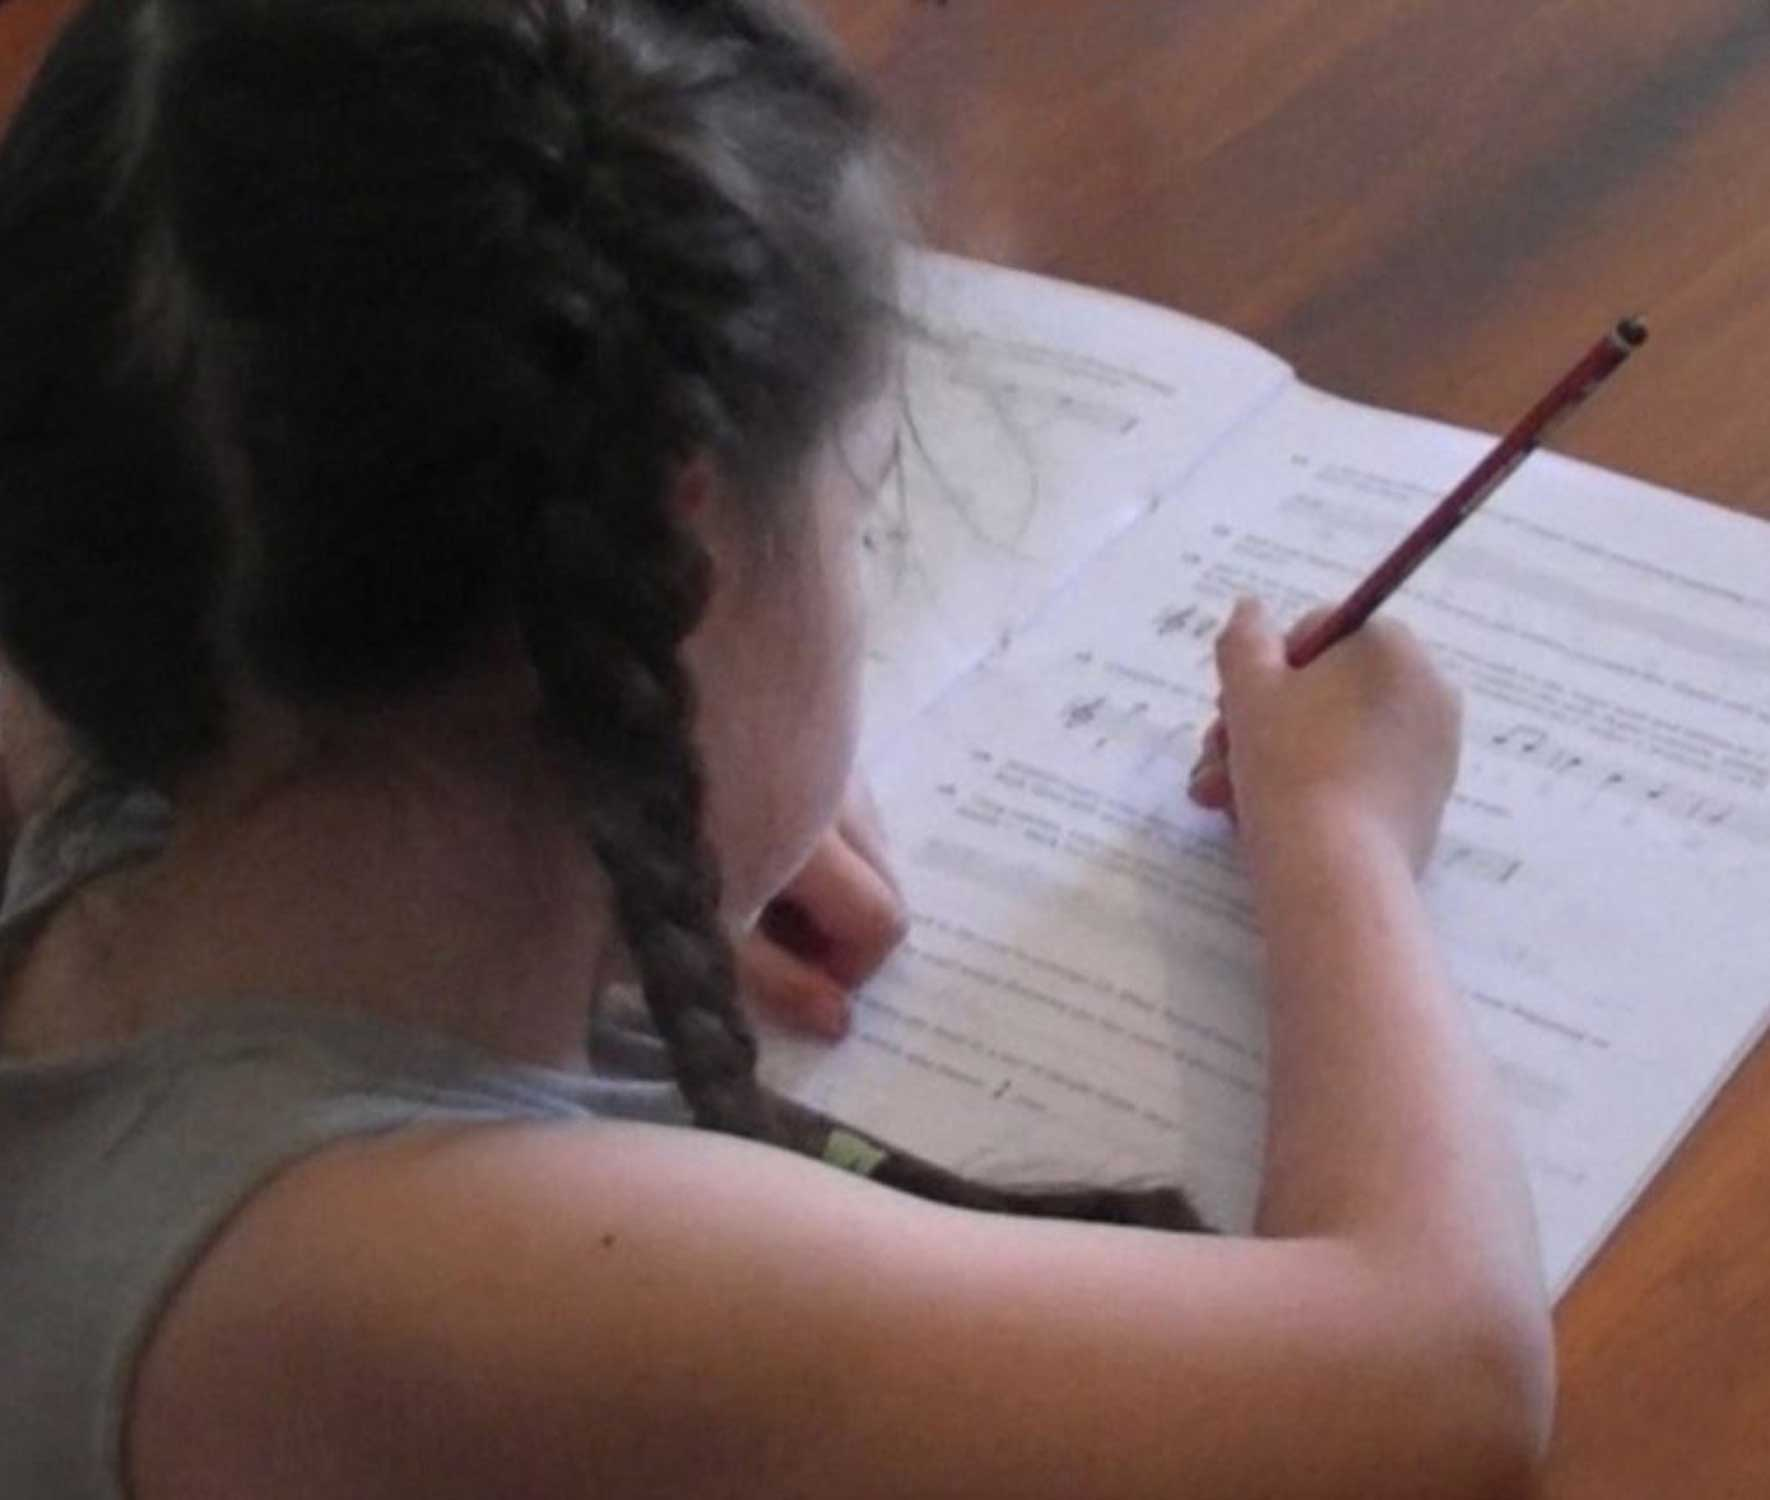 Tookii things to do with kids learning music theory one of the activities for kids